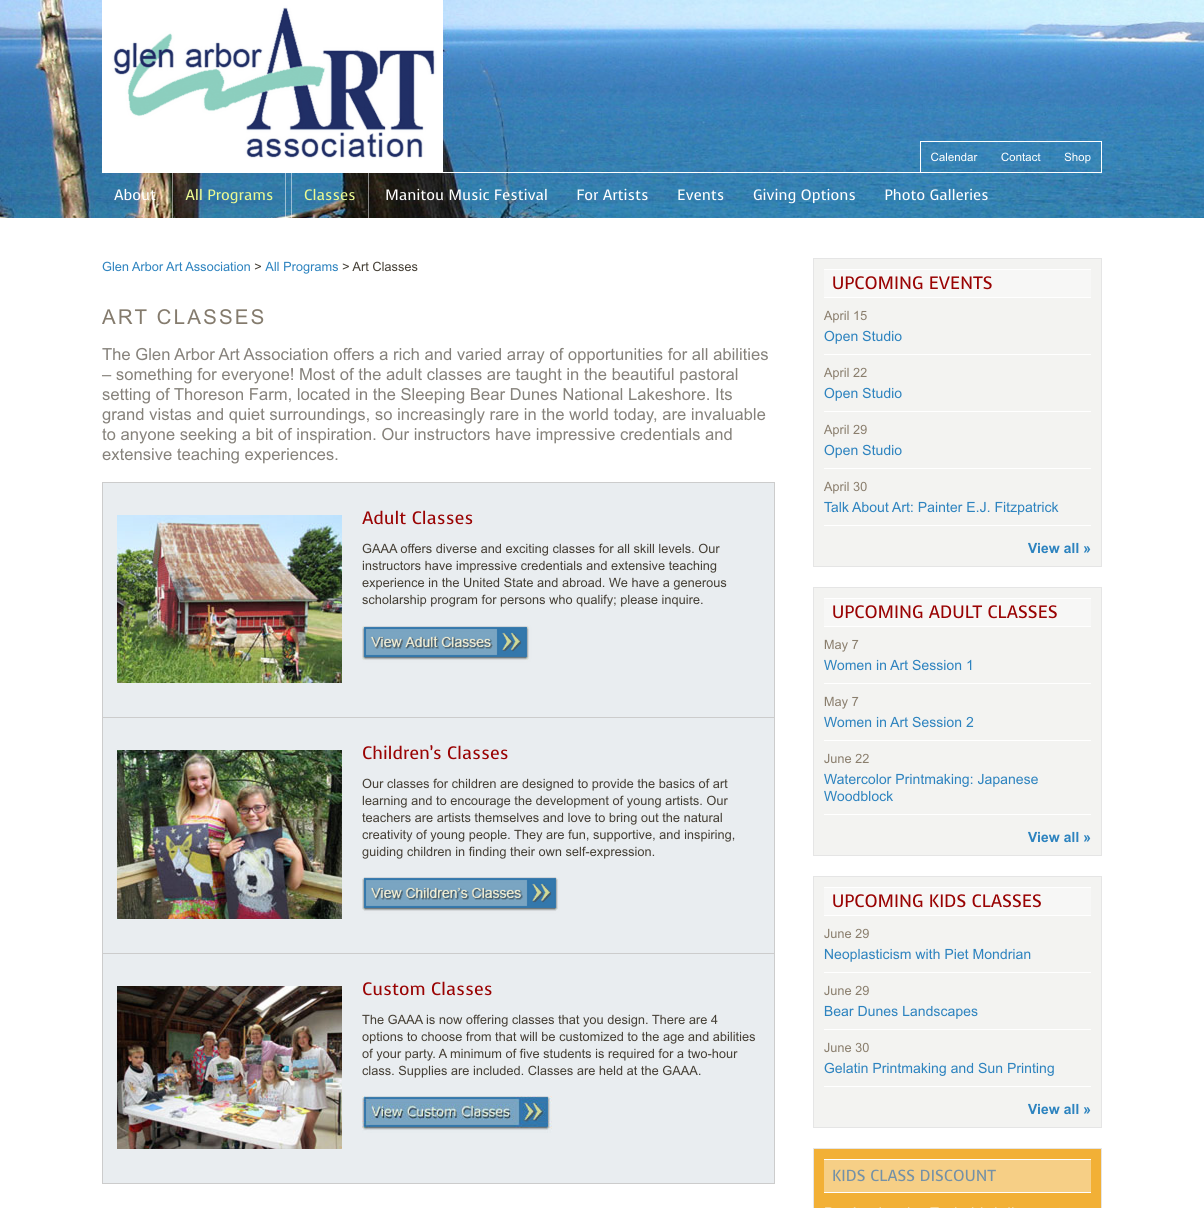 showcase - glenarbor- art classes landing